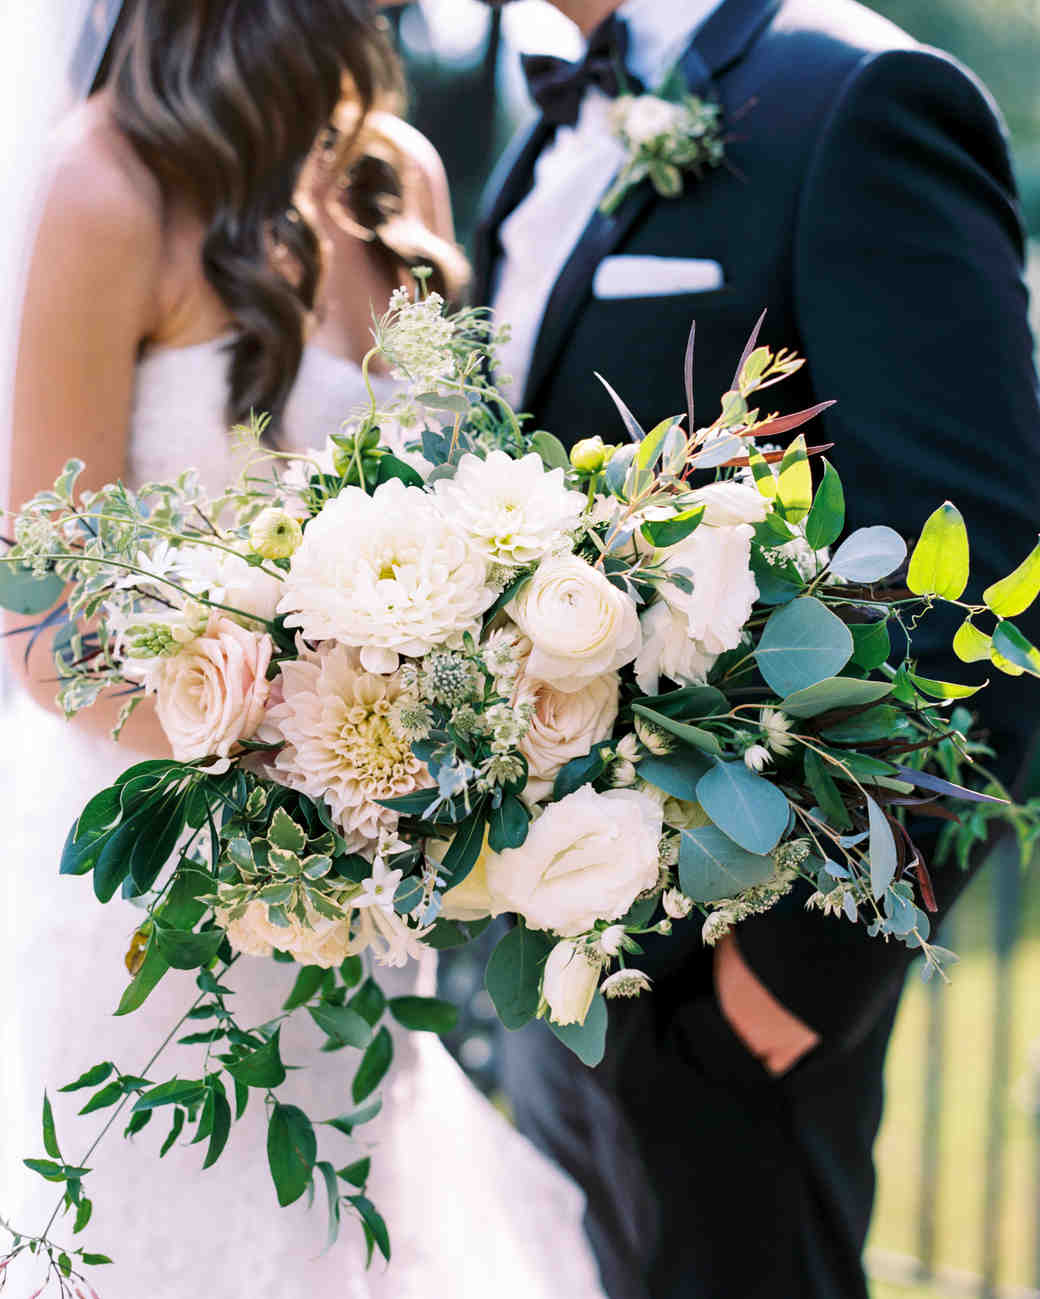 Overflowing Bridal Bouquet with Greenery and Neutral Flowers